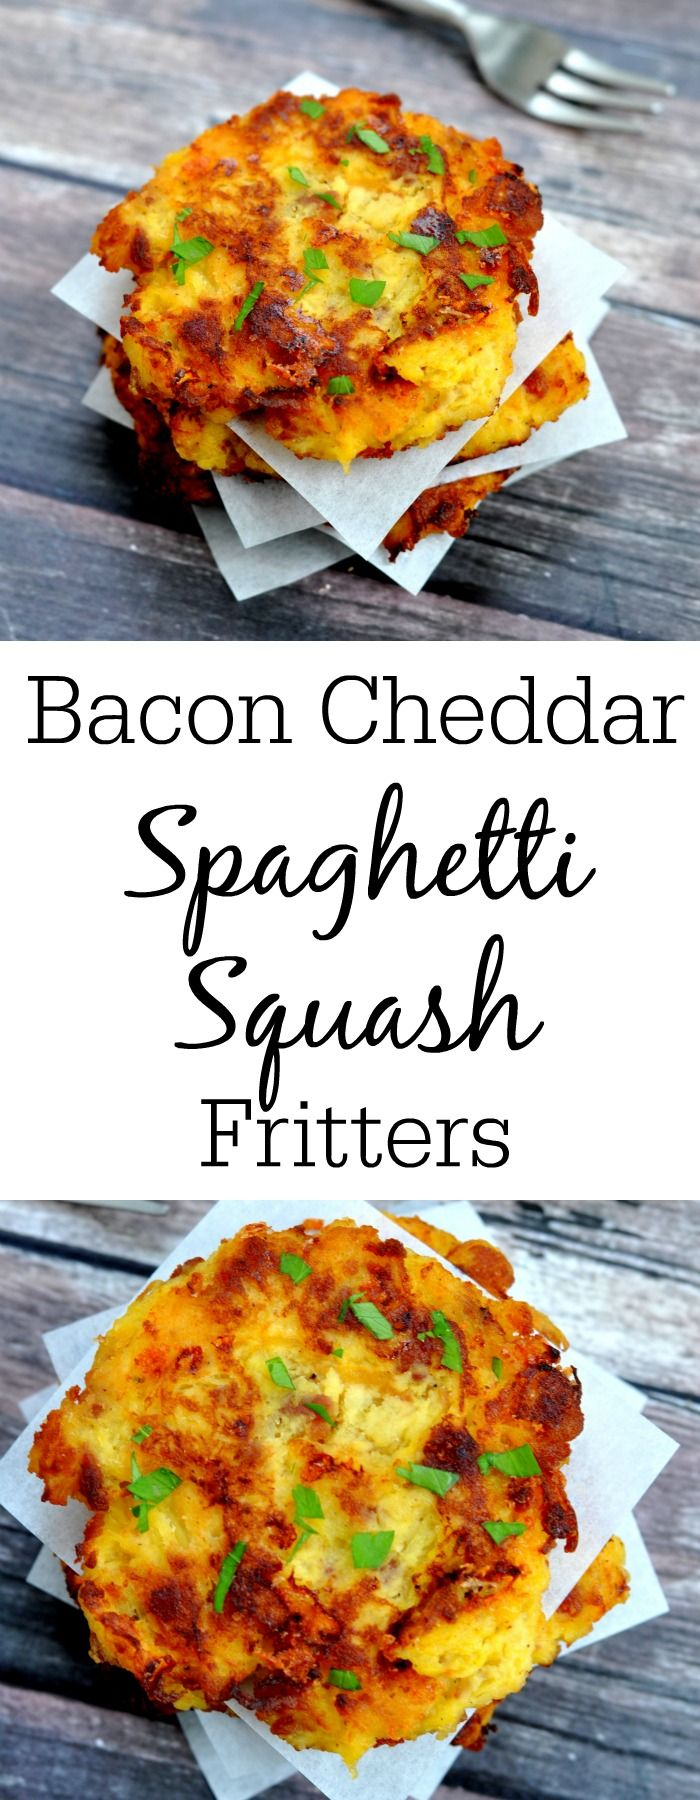 Best 25+ Squash fritters ideas on Pinterest | Yellow squash fritter recipe, Recipes with yellow ...